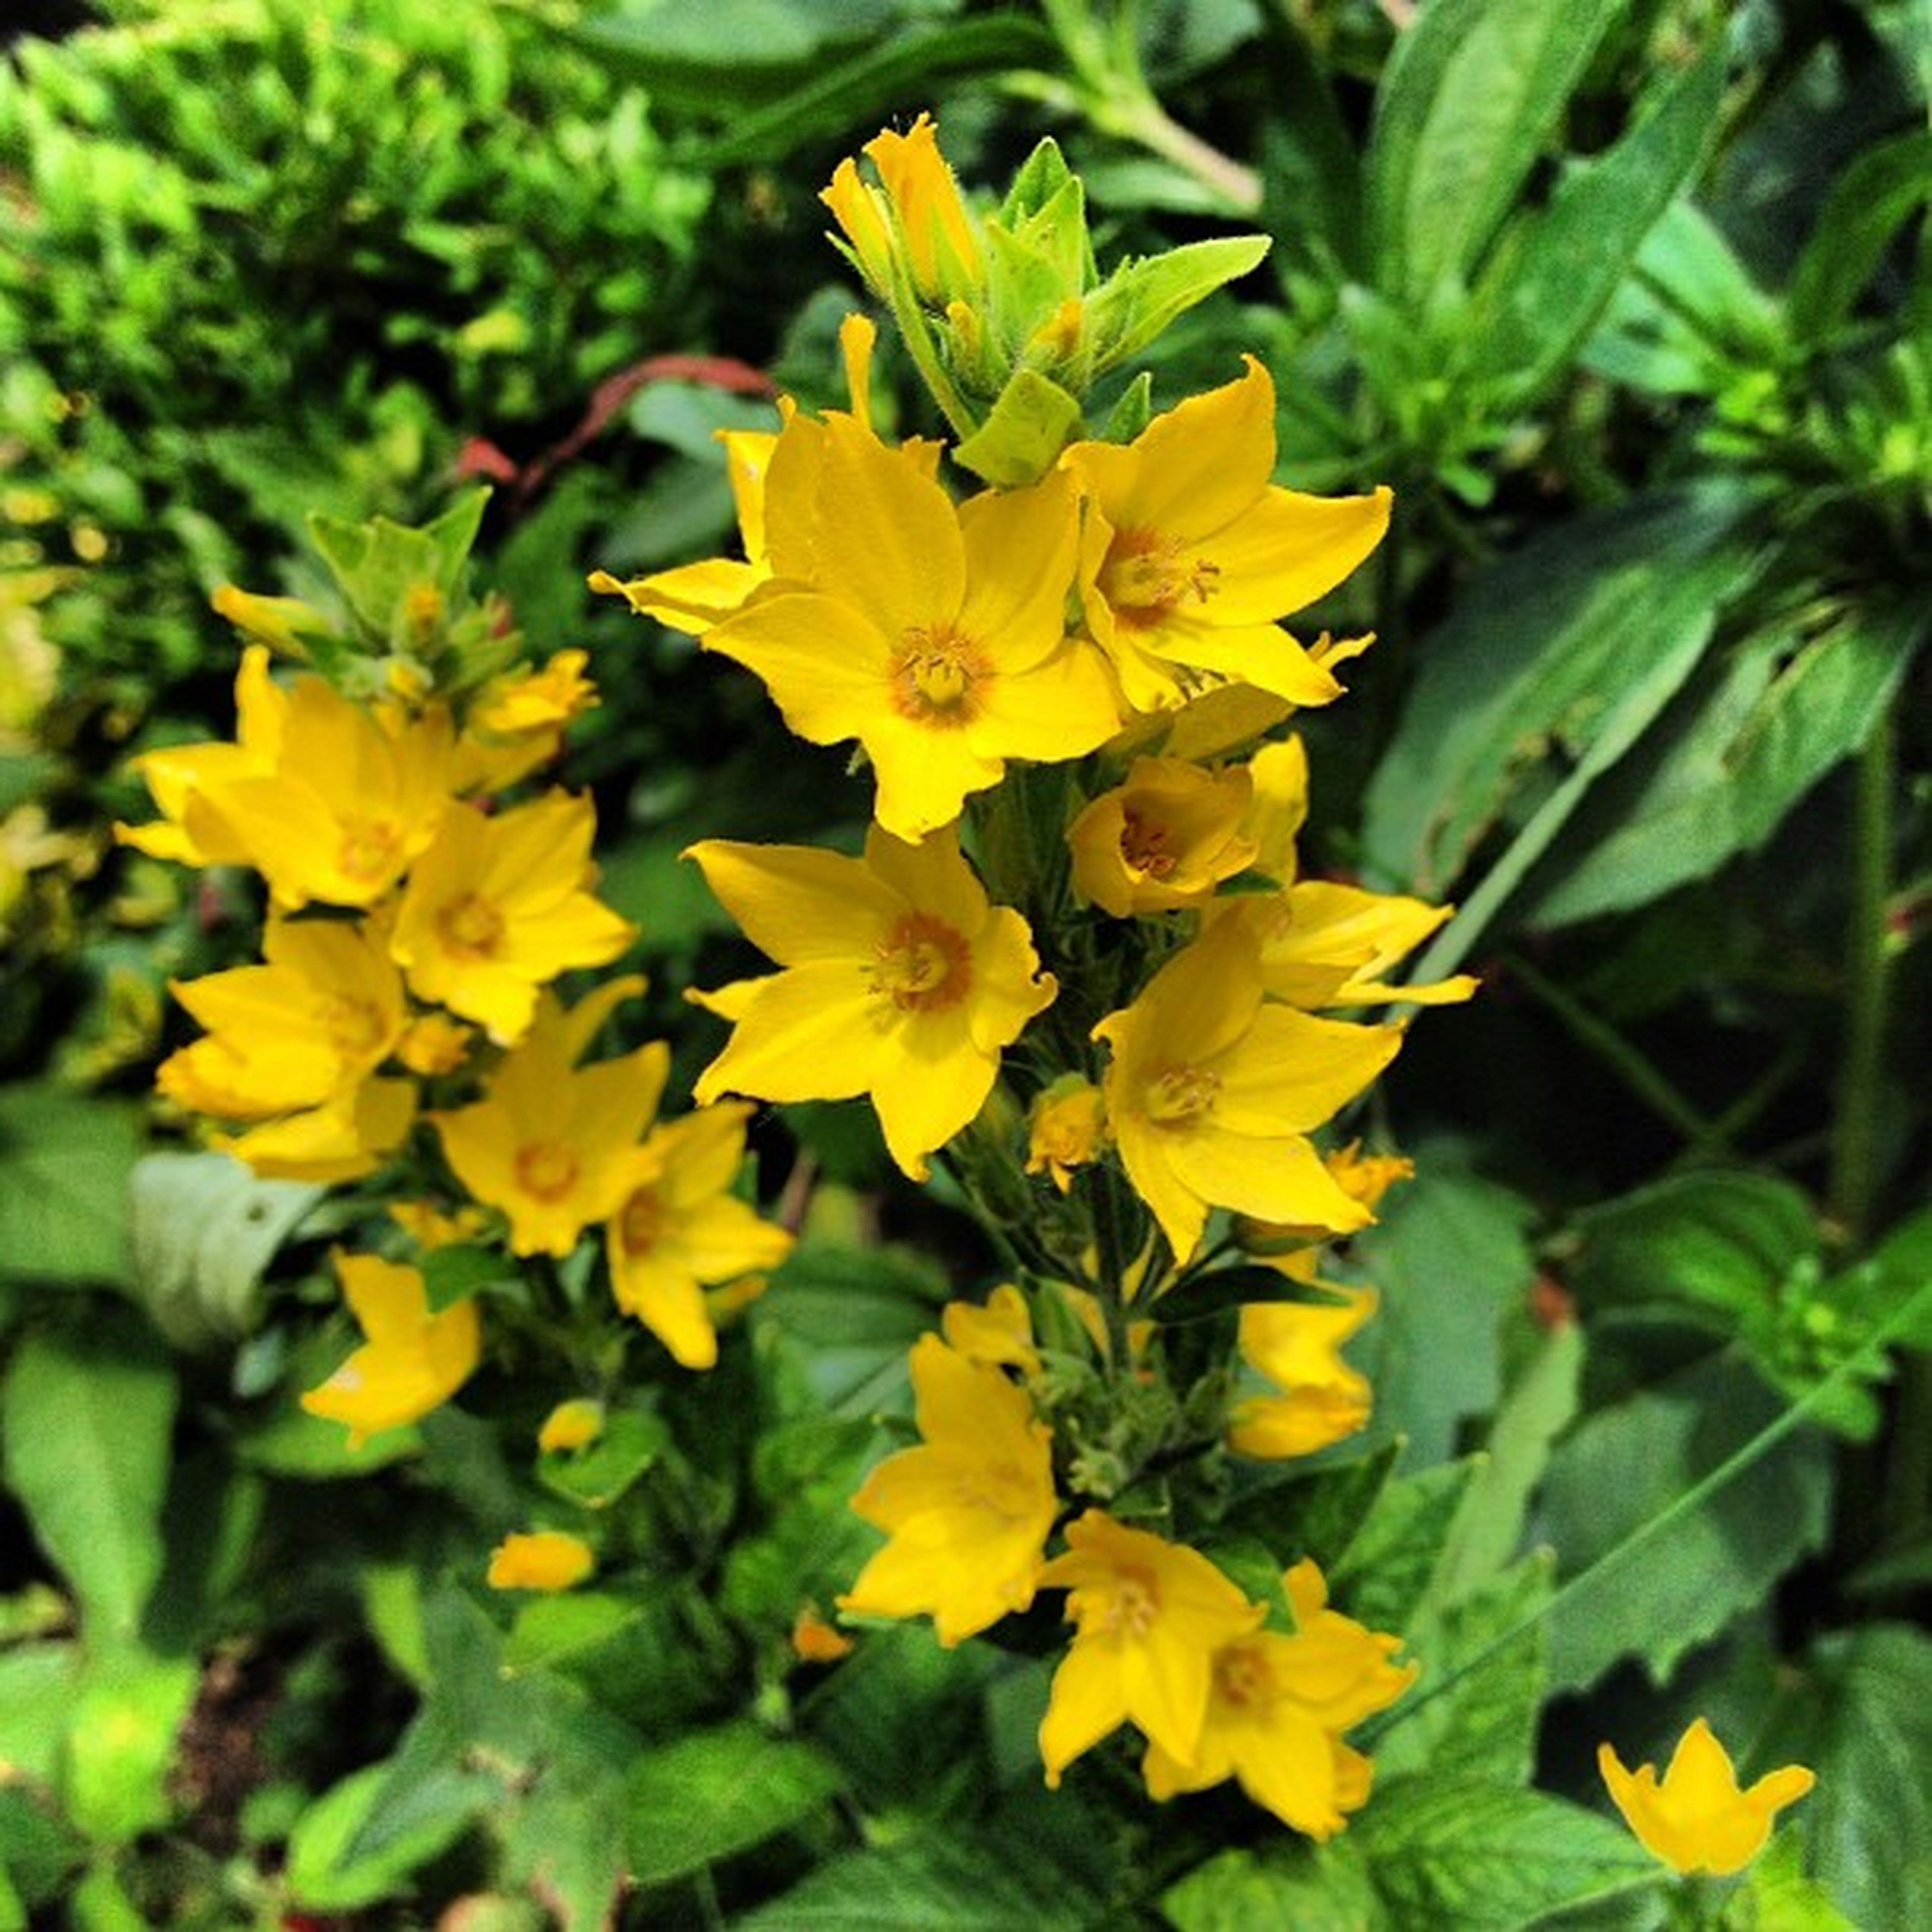 flower, yellow, freshness, petal, growth, fragility, beauty in nature, flower head, plant, blooming, nature, leaf, focus on foreground, close-up, green color, in bloom, park - man made space, blossom, day, outdoors